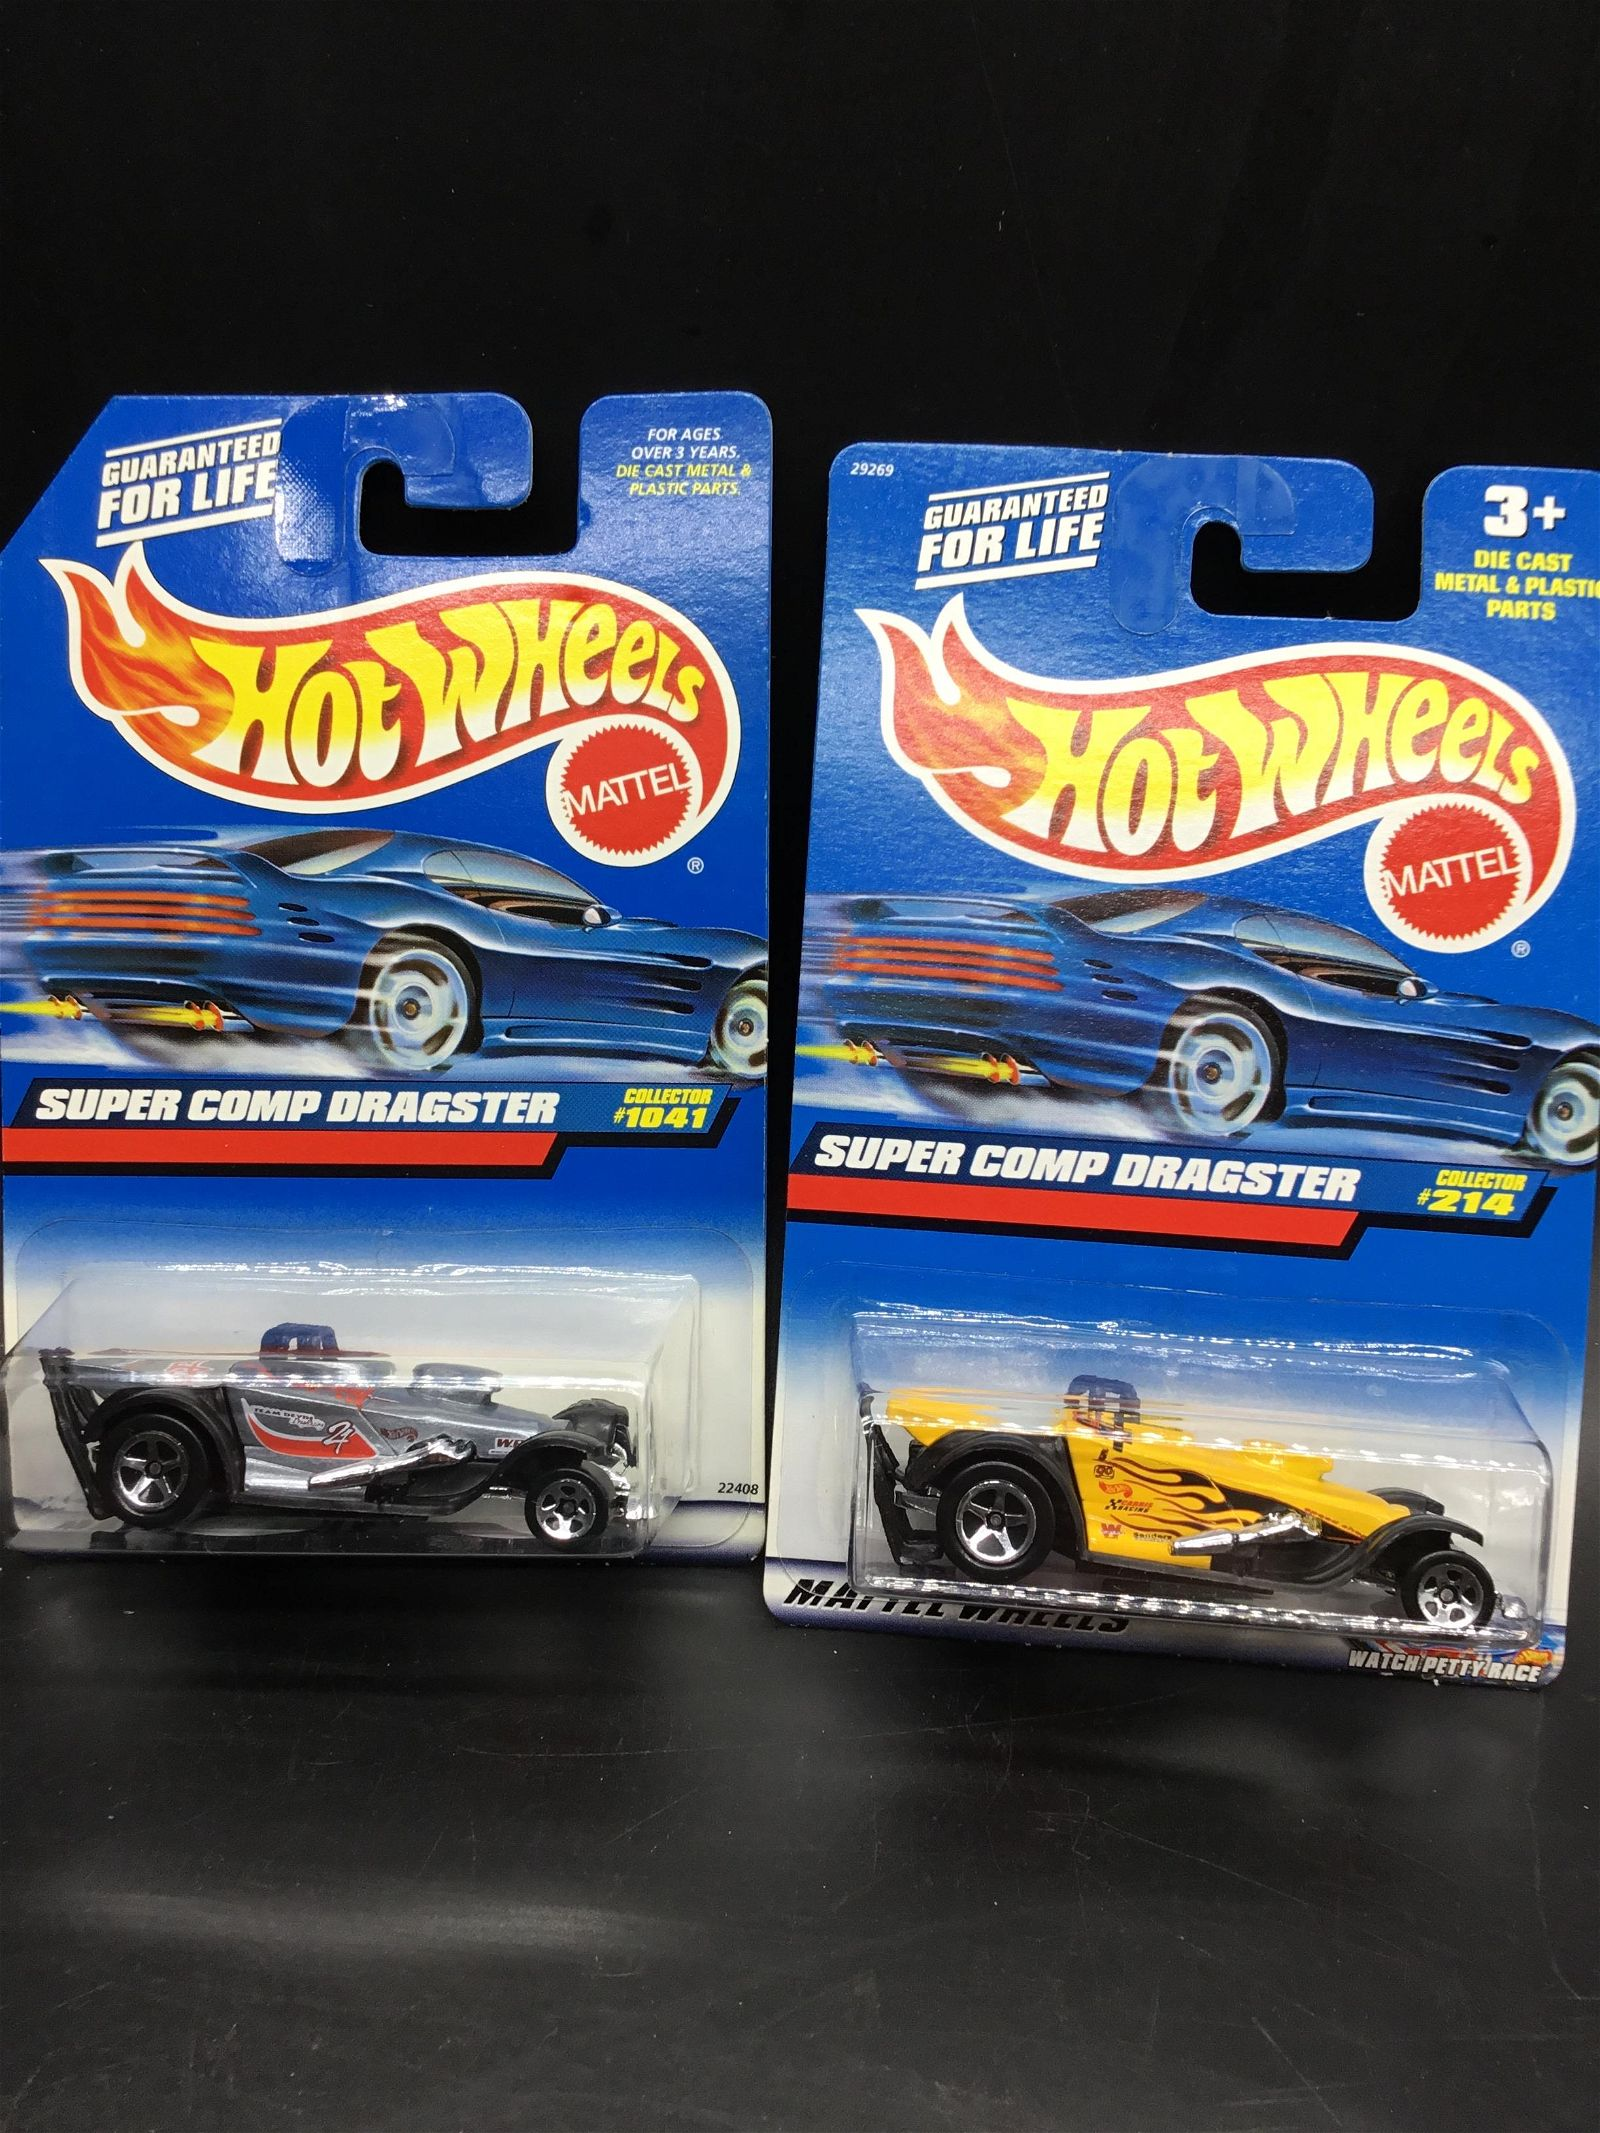 Set of two Hot Wheels Super Comp dragster